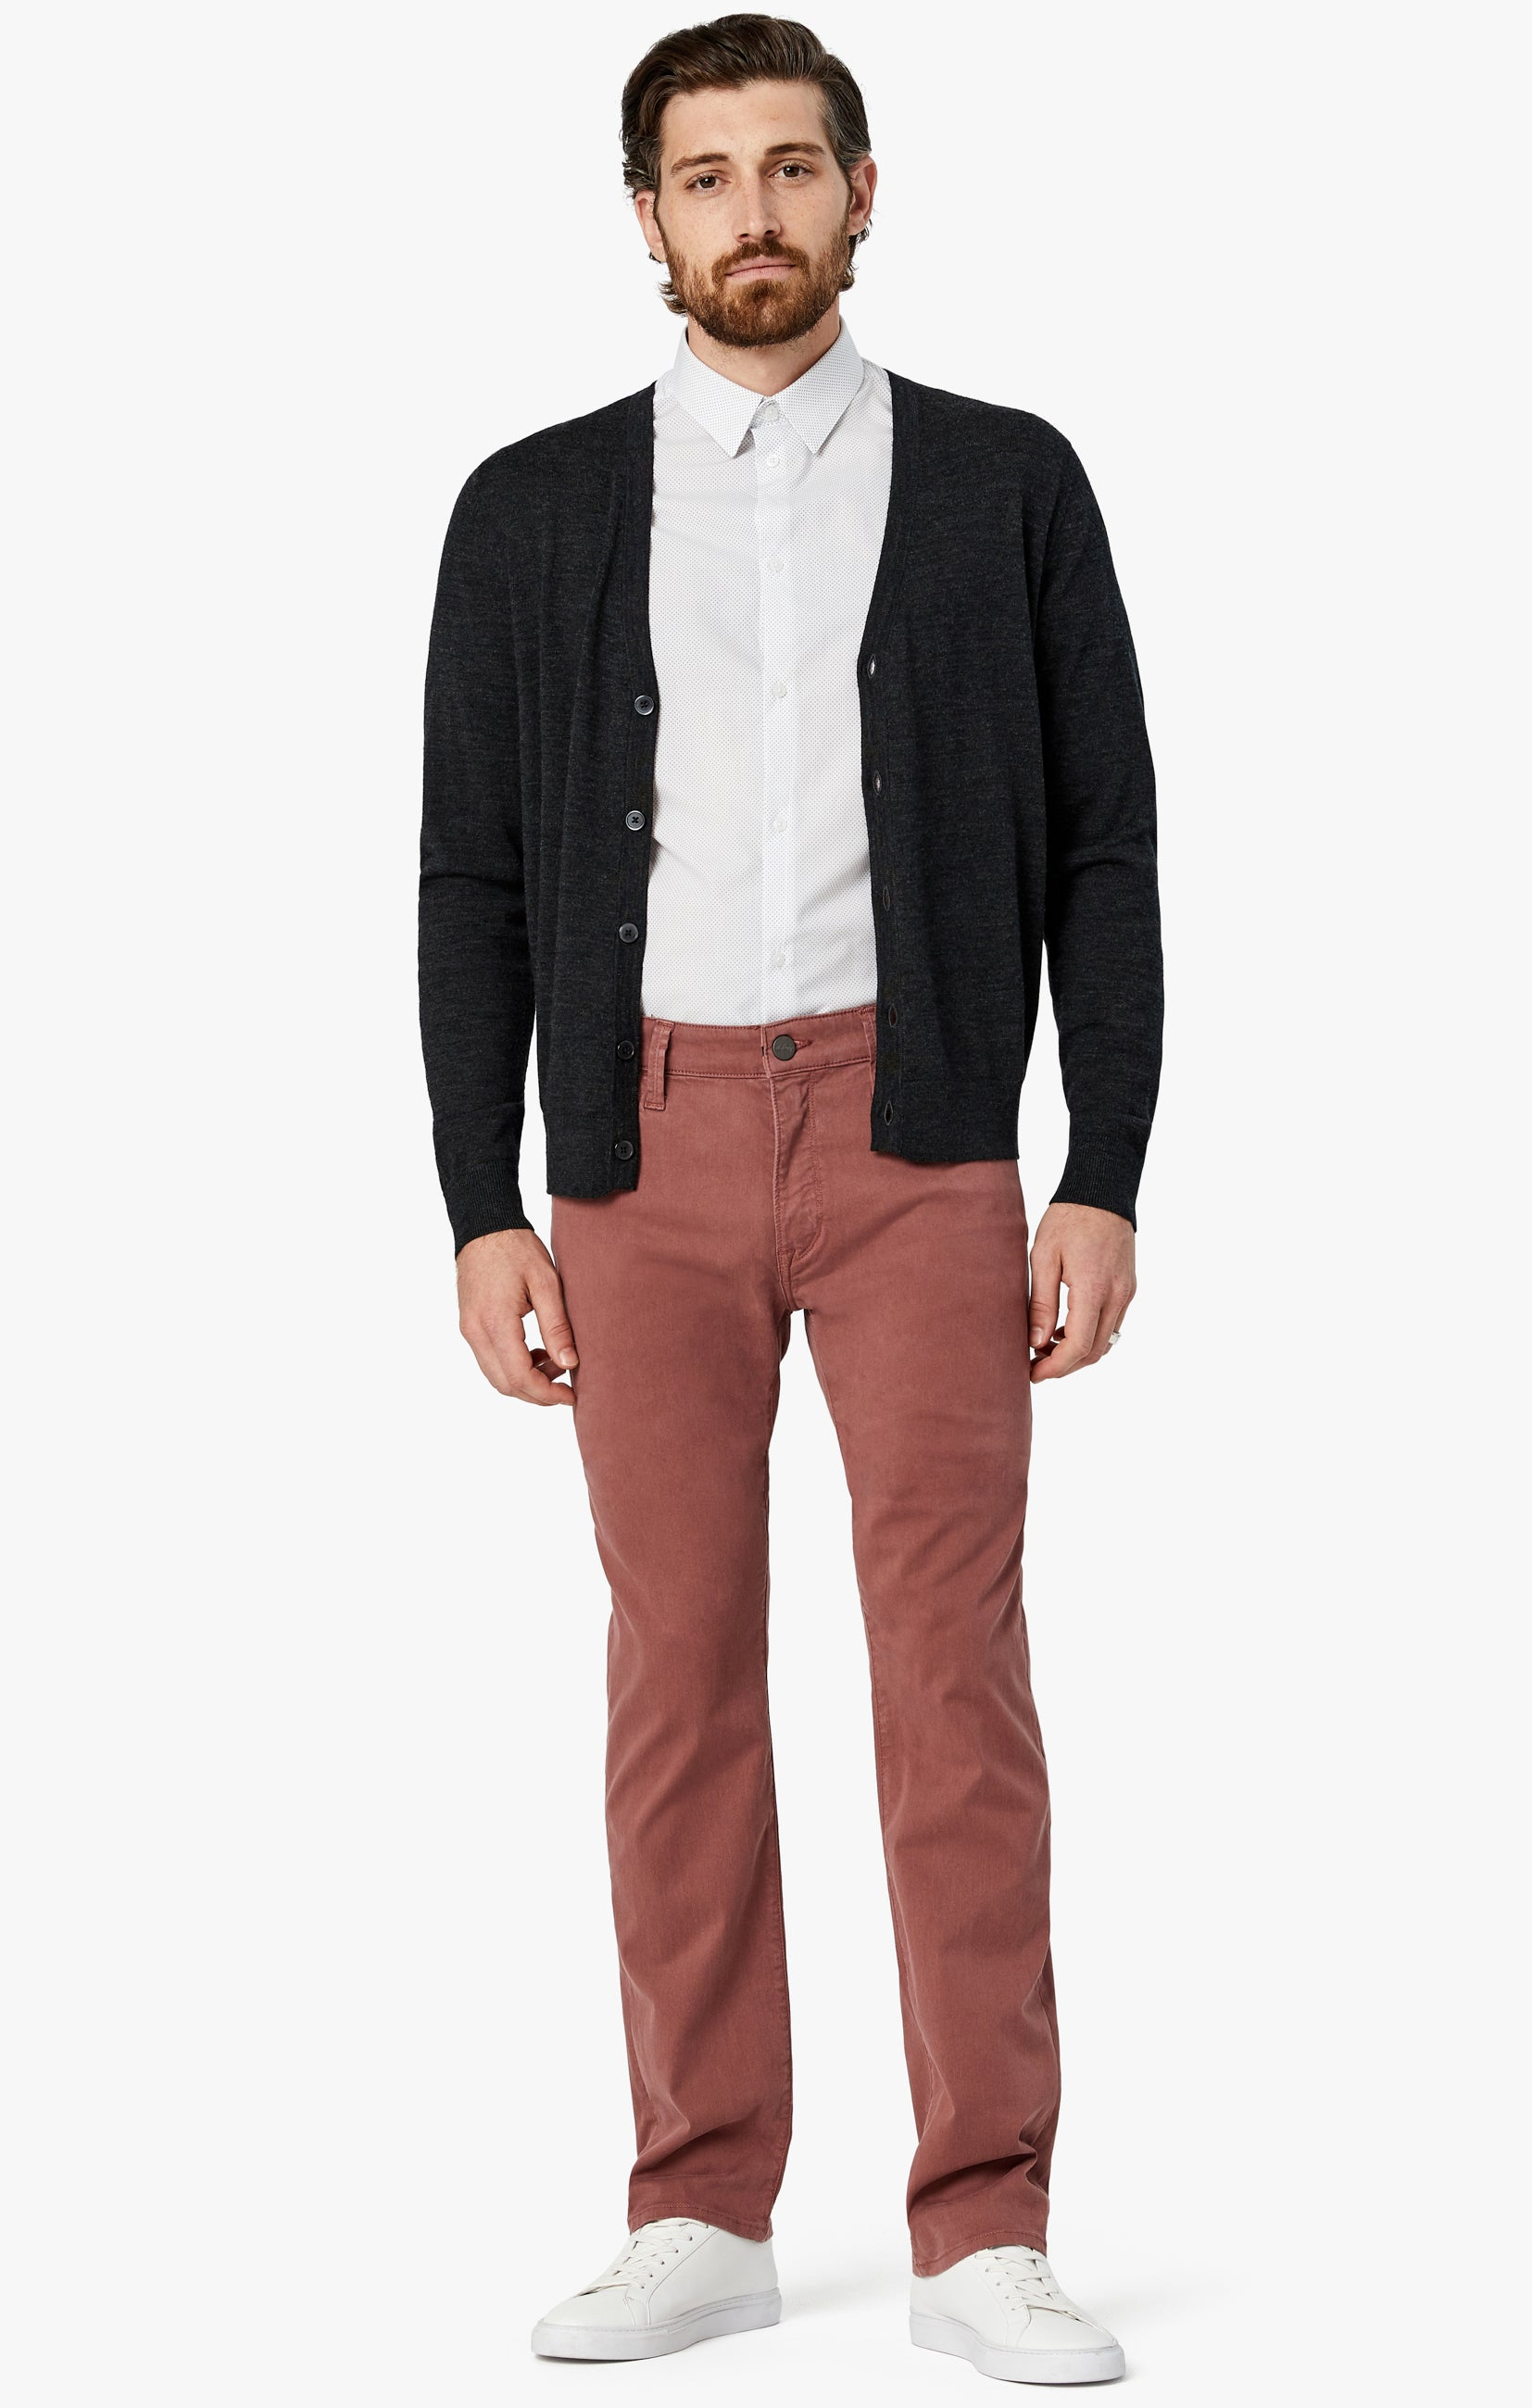 Courage Straight Leg Pants in Berry Twill Image 1